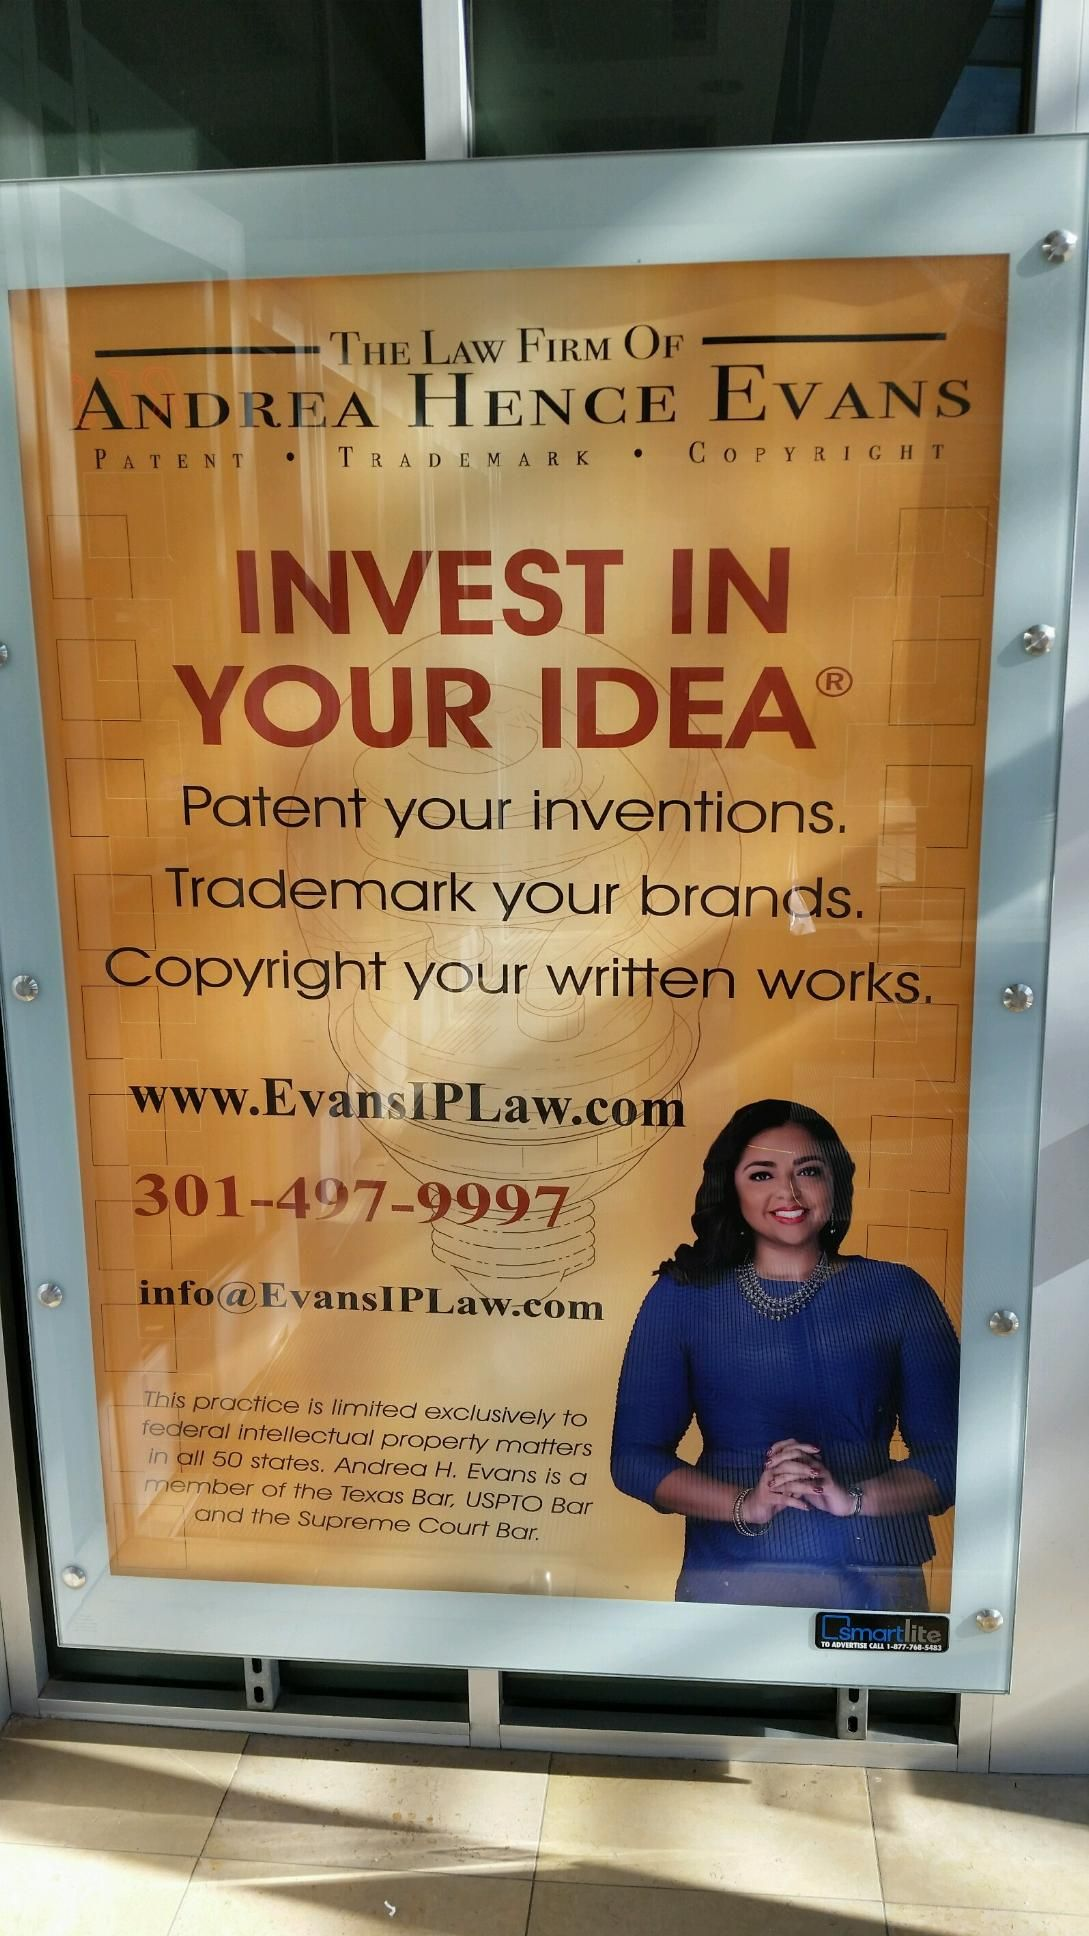 Ad in the Food Court Law firm, Investing, Firm